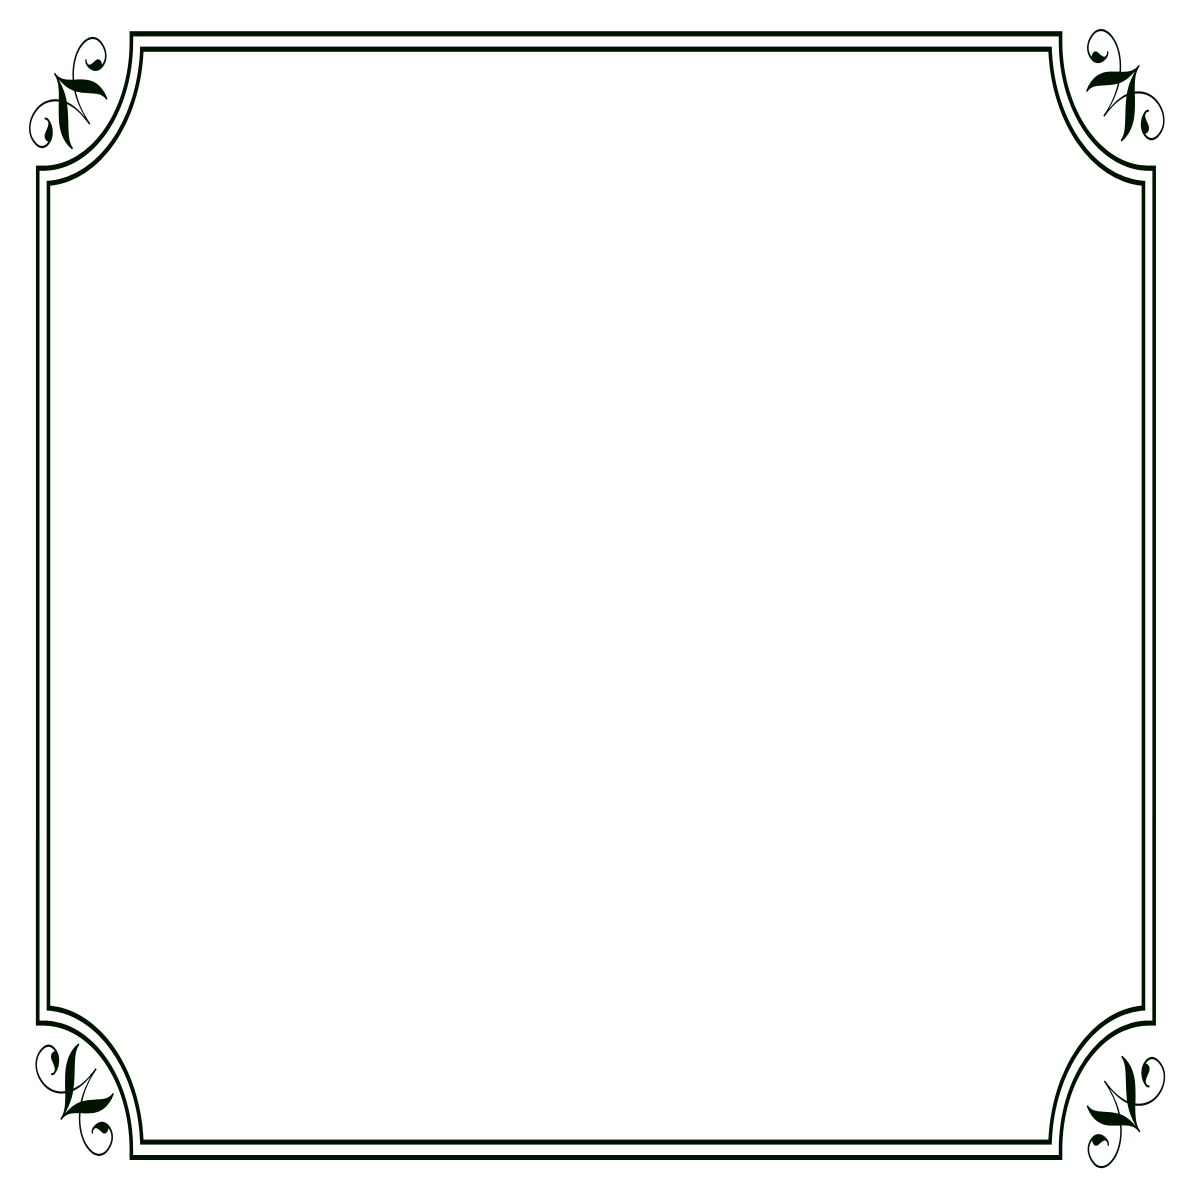 Photoshop borders png. Black border frames frame